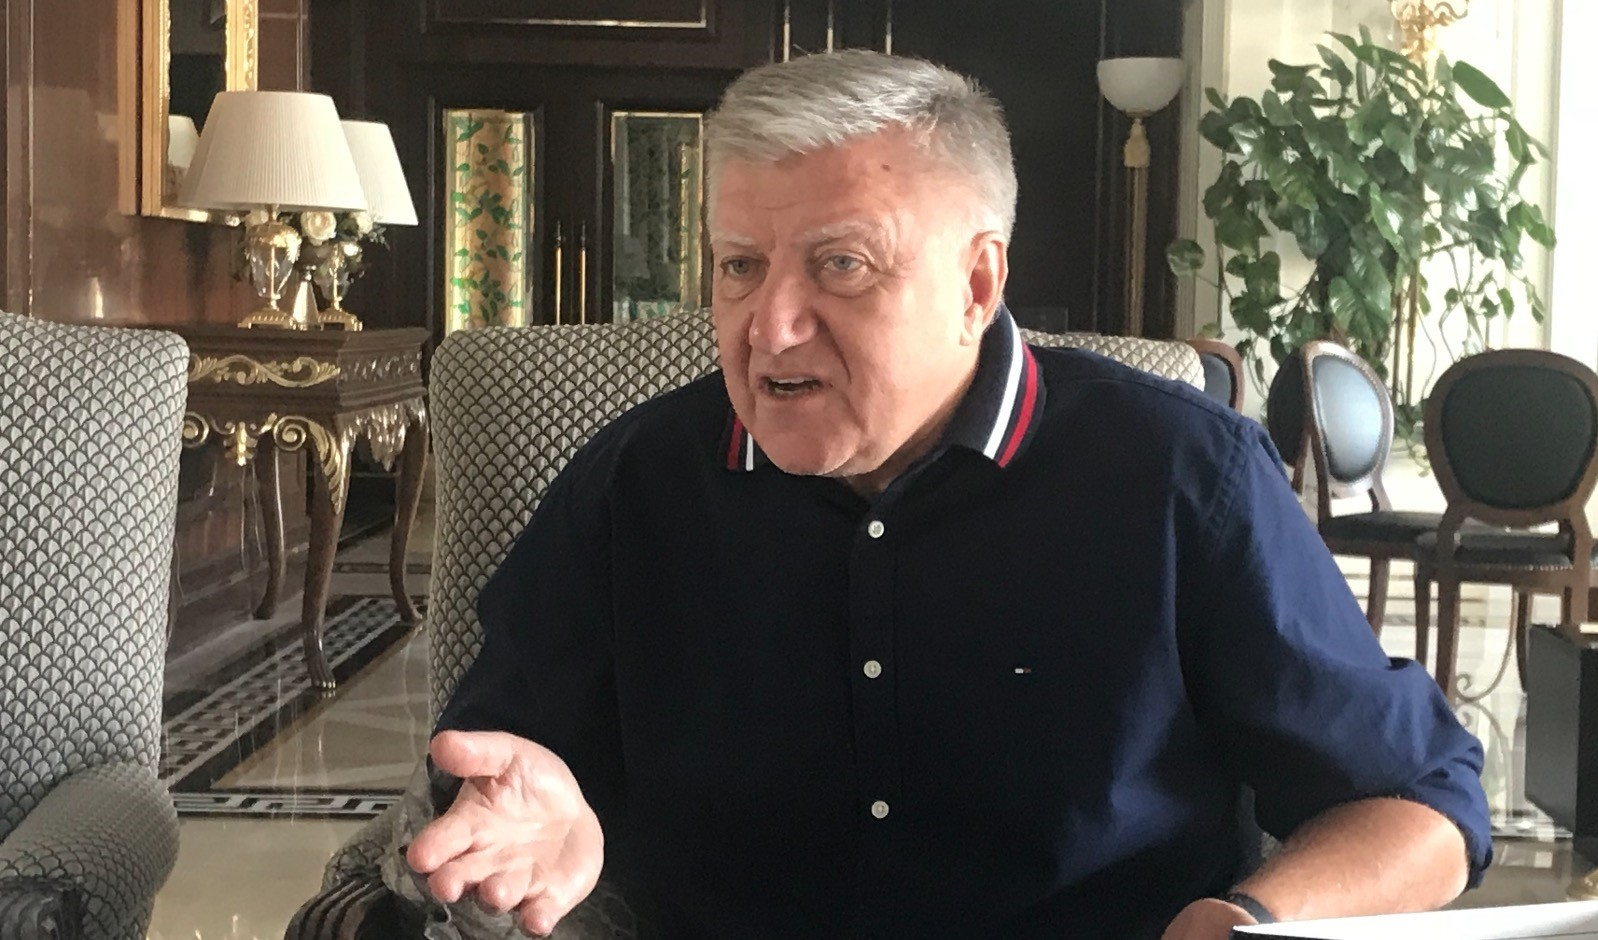 Regarding the Syrian crises, Vladimir Shmakov indicated that the firm cooperation between Russia and Turkey has proven the strategic alignment that enabled demilitarization in Syriau2019s Idlib, referring to recent Sochi deal between the two countries.